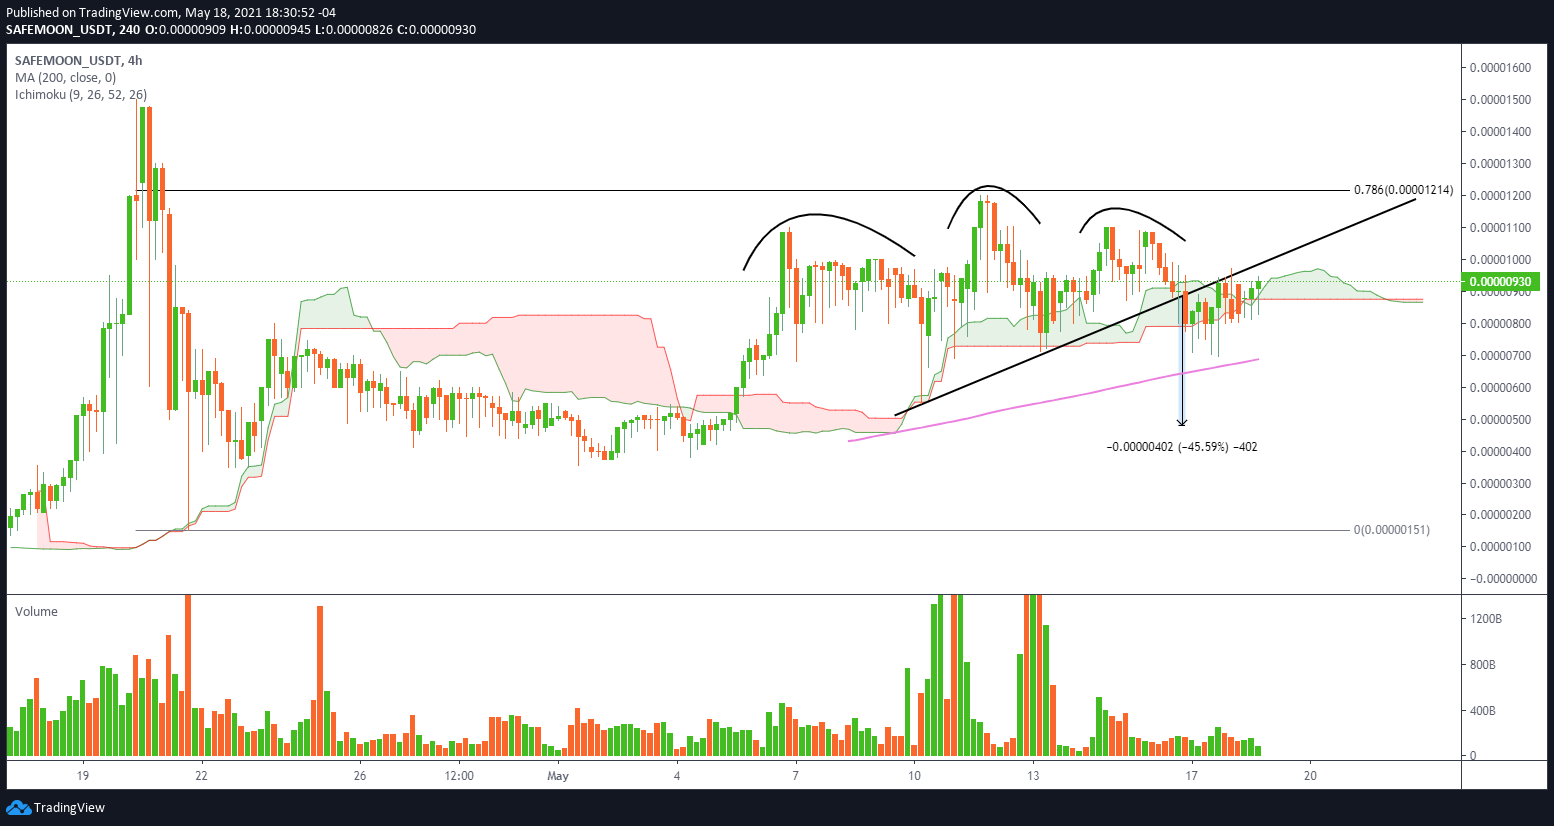 SAFEMOON/USD 4-hour chart